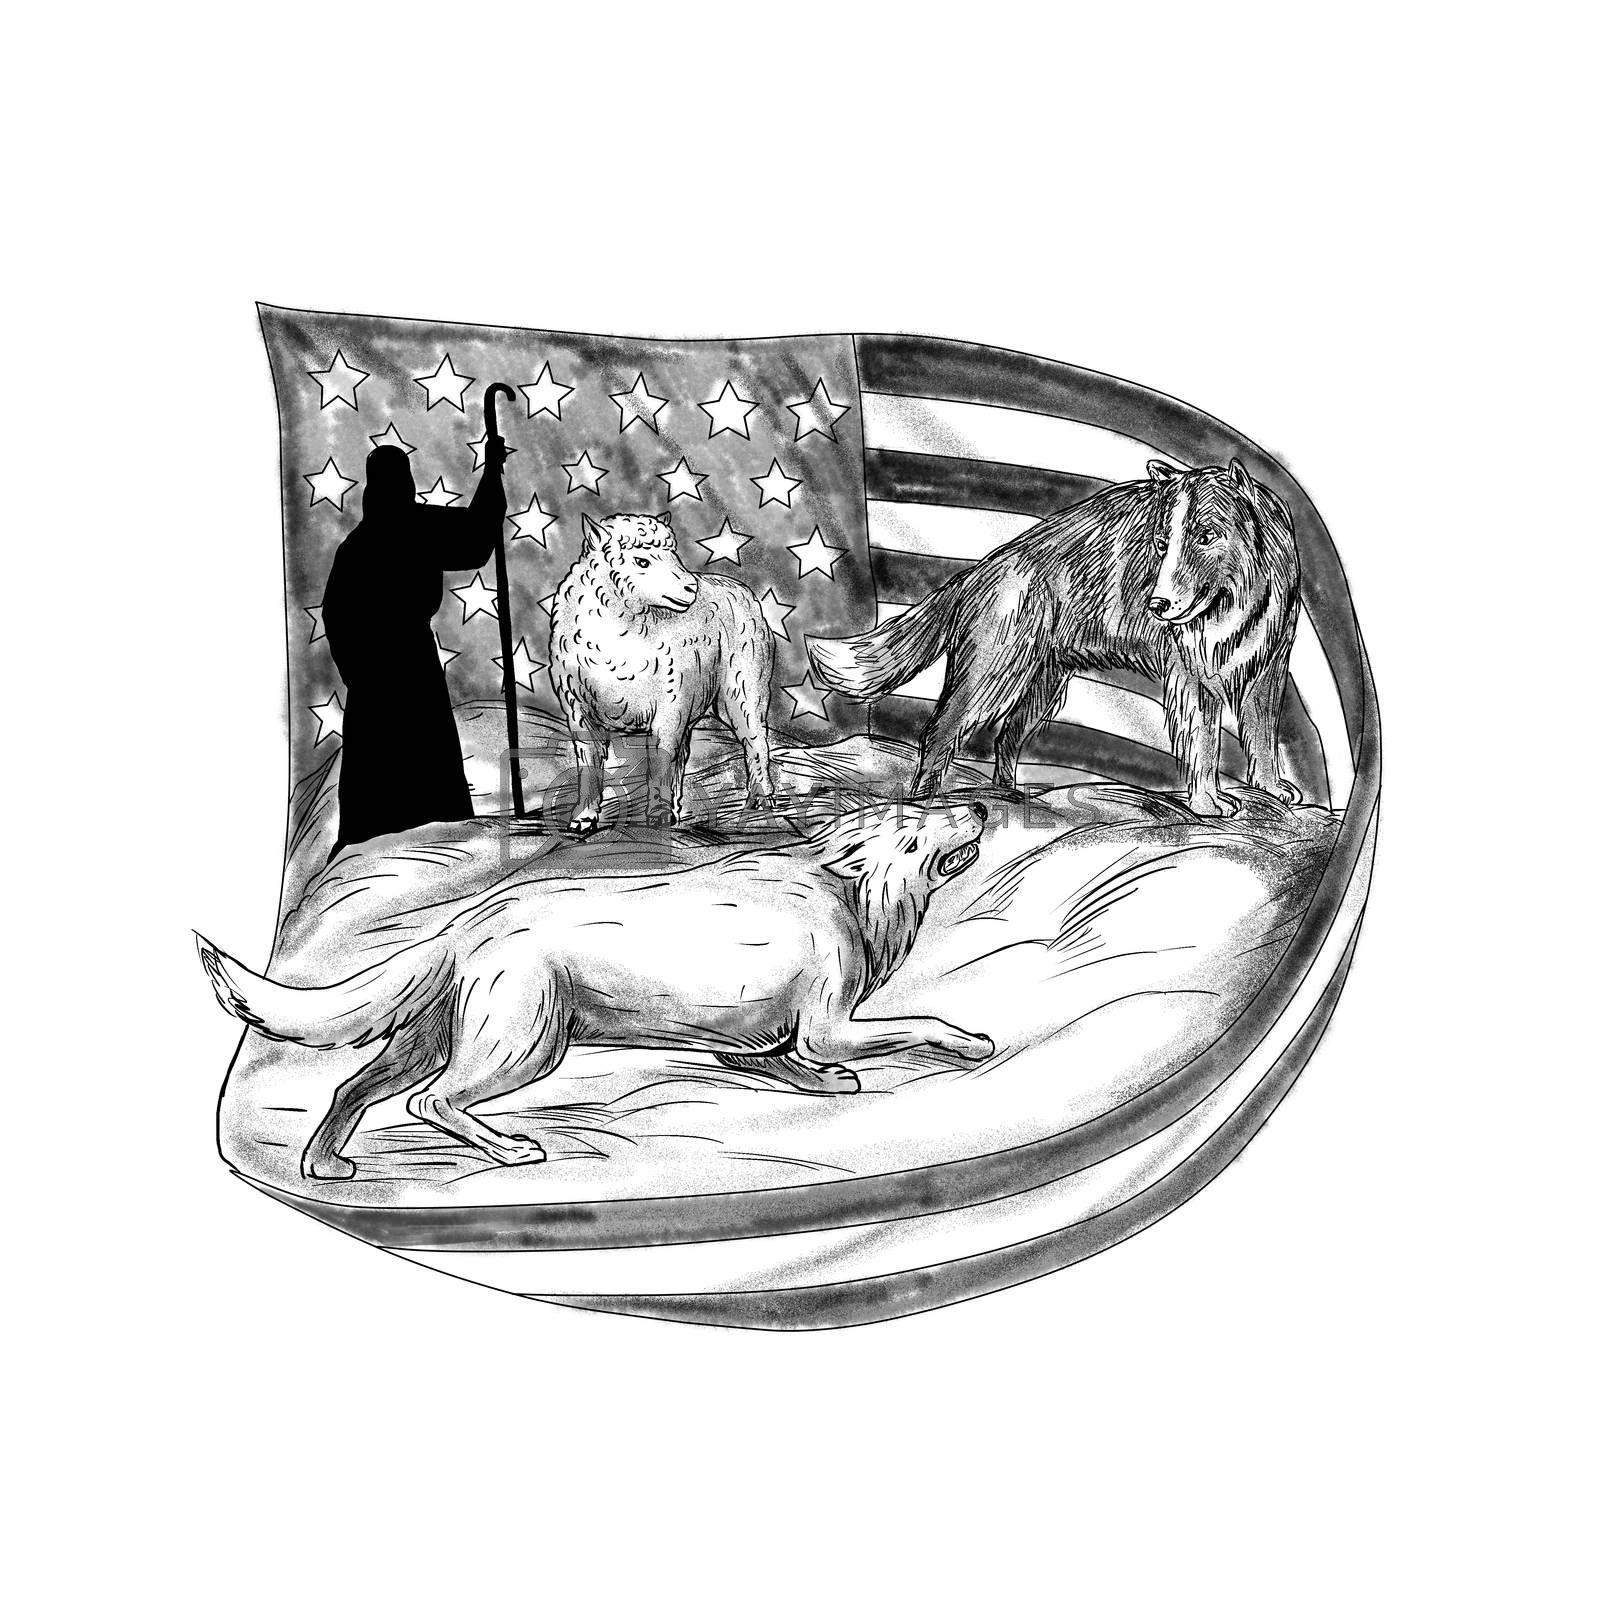 Tattoo style illustration of a sheepdog or herding dog protecting a lamb from a wolf with shepherd in background and USA stars and stripes American flag.